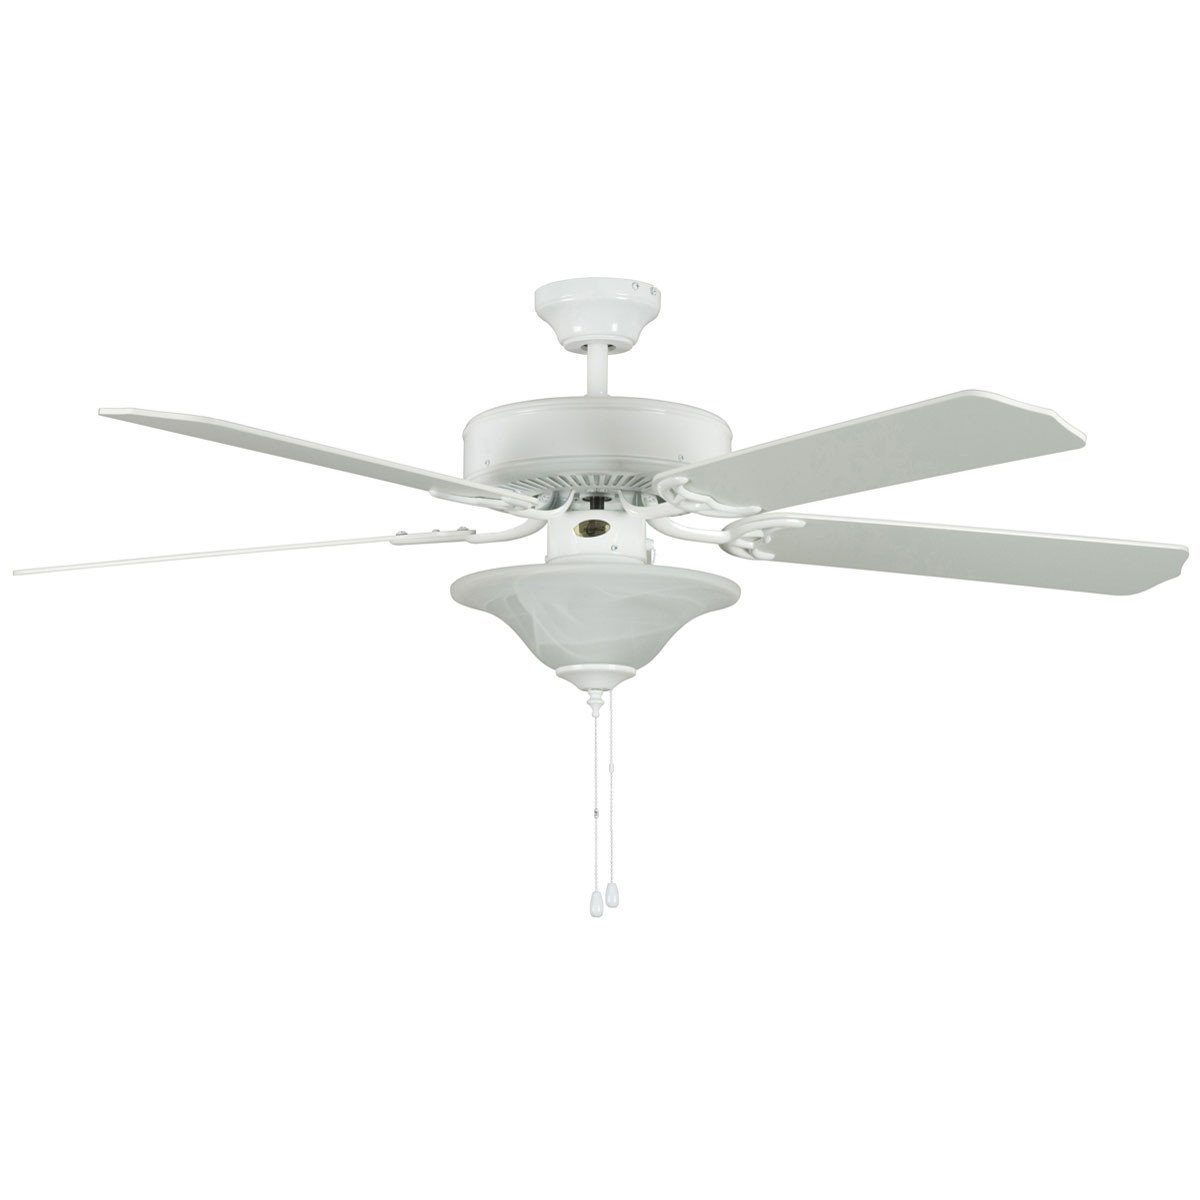 "Concord Fans 52"" Heritage Square White Ceiling Fan with Light Kit"